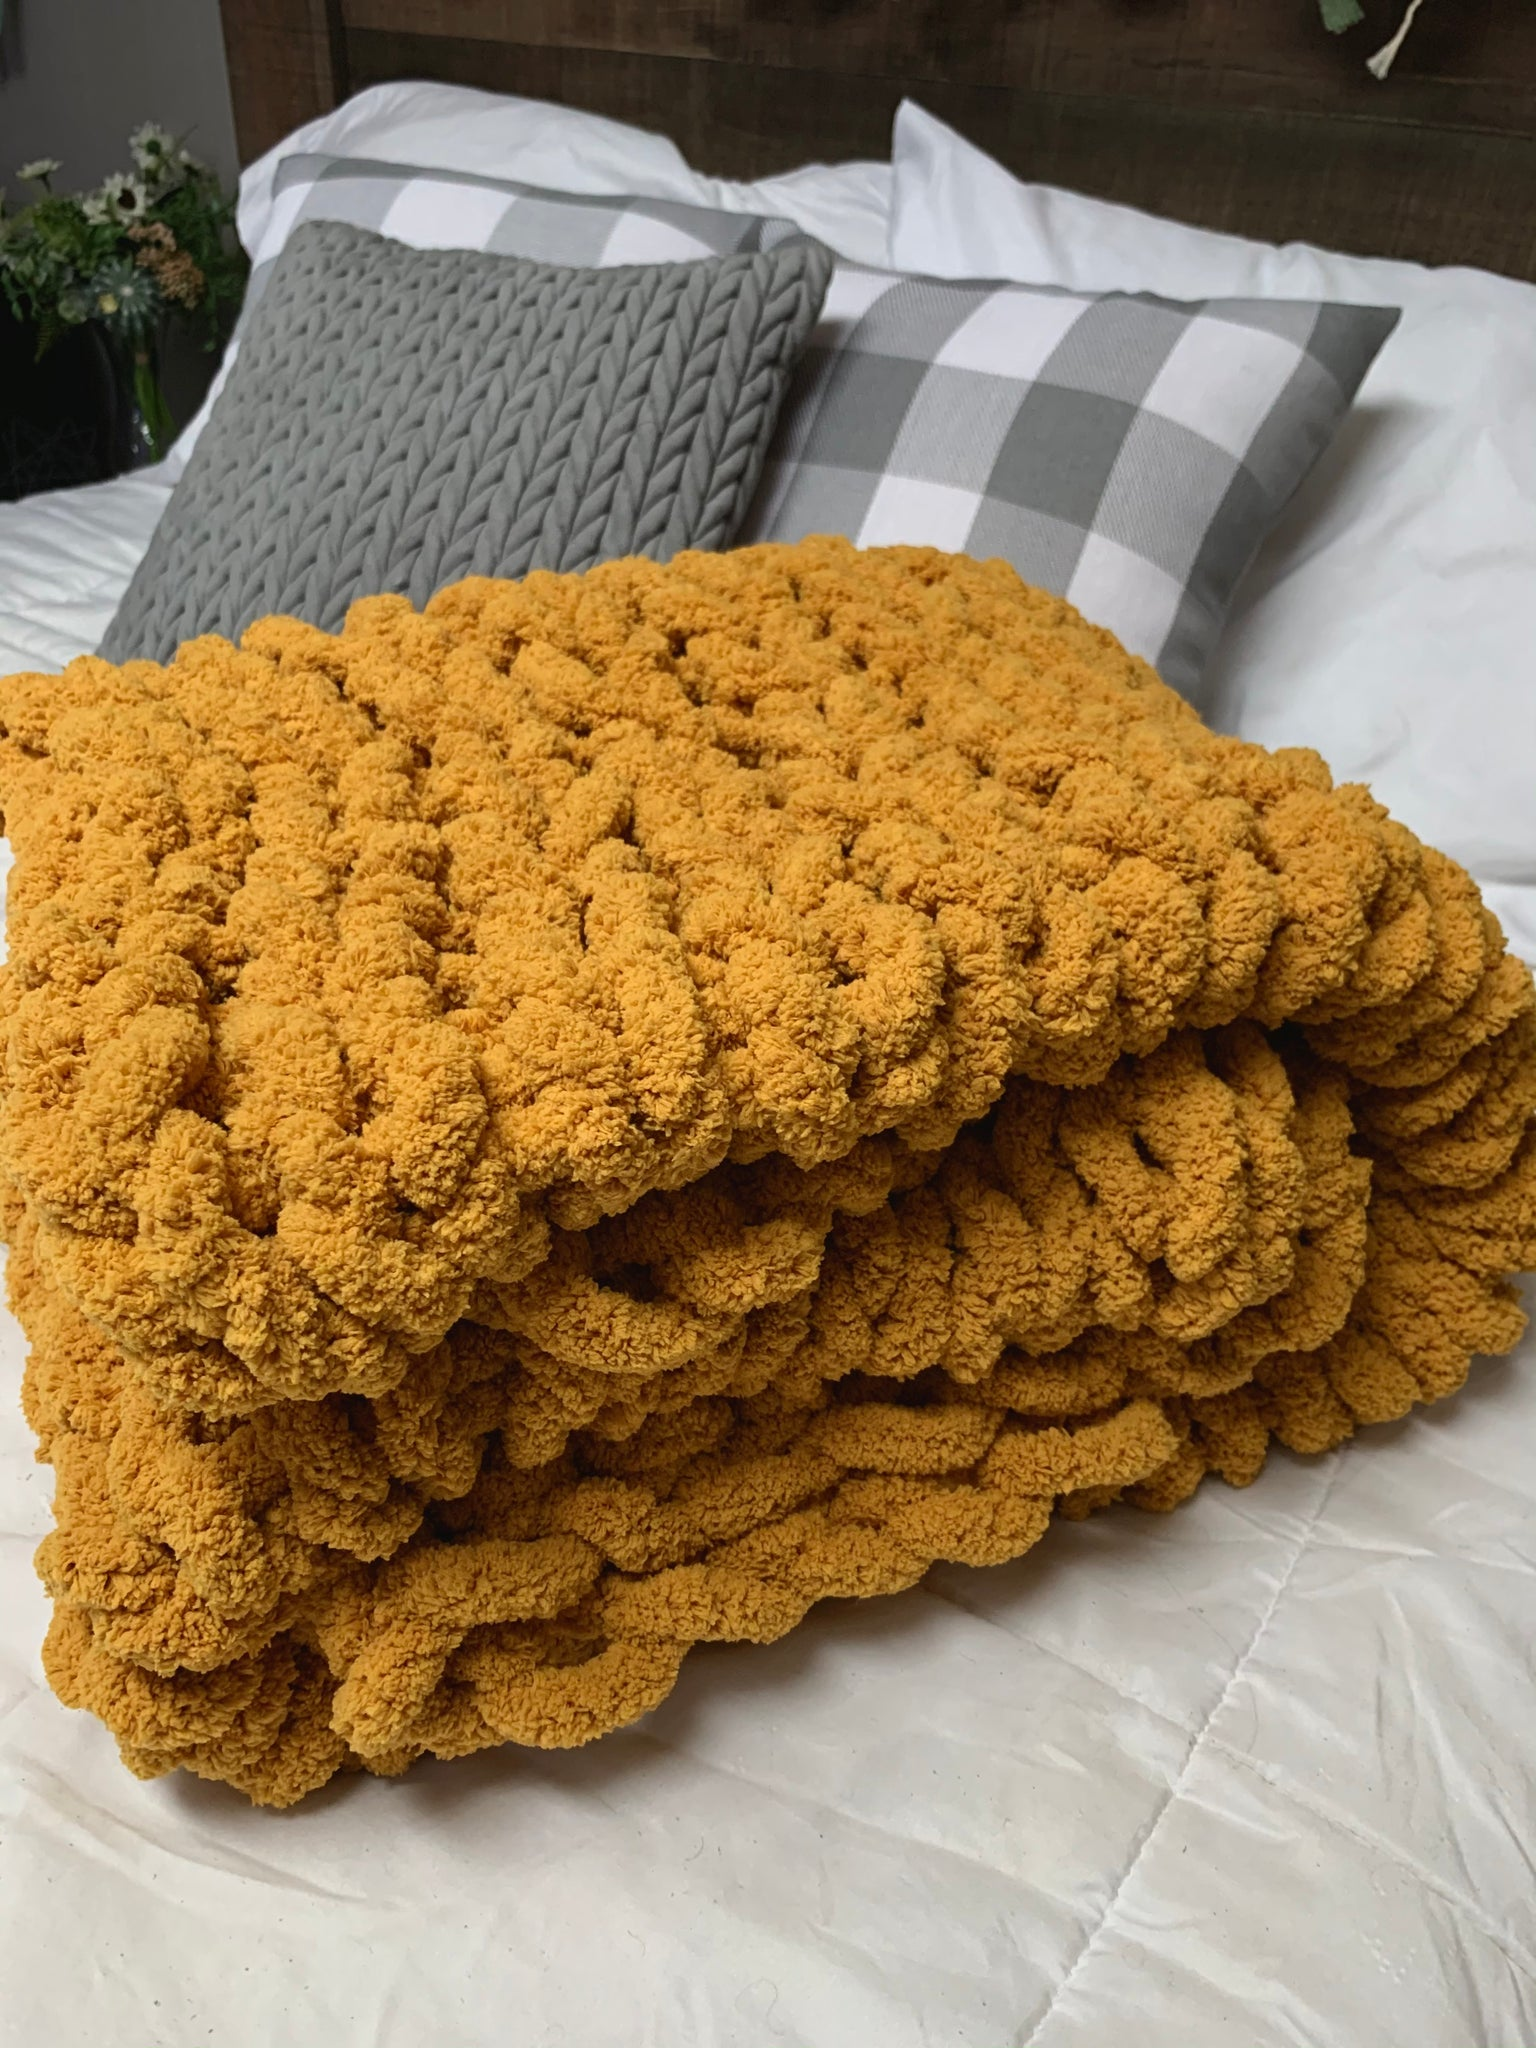 Handmade Chunky Knit Blanket in Mustard Yellow